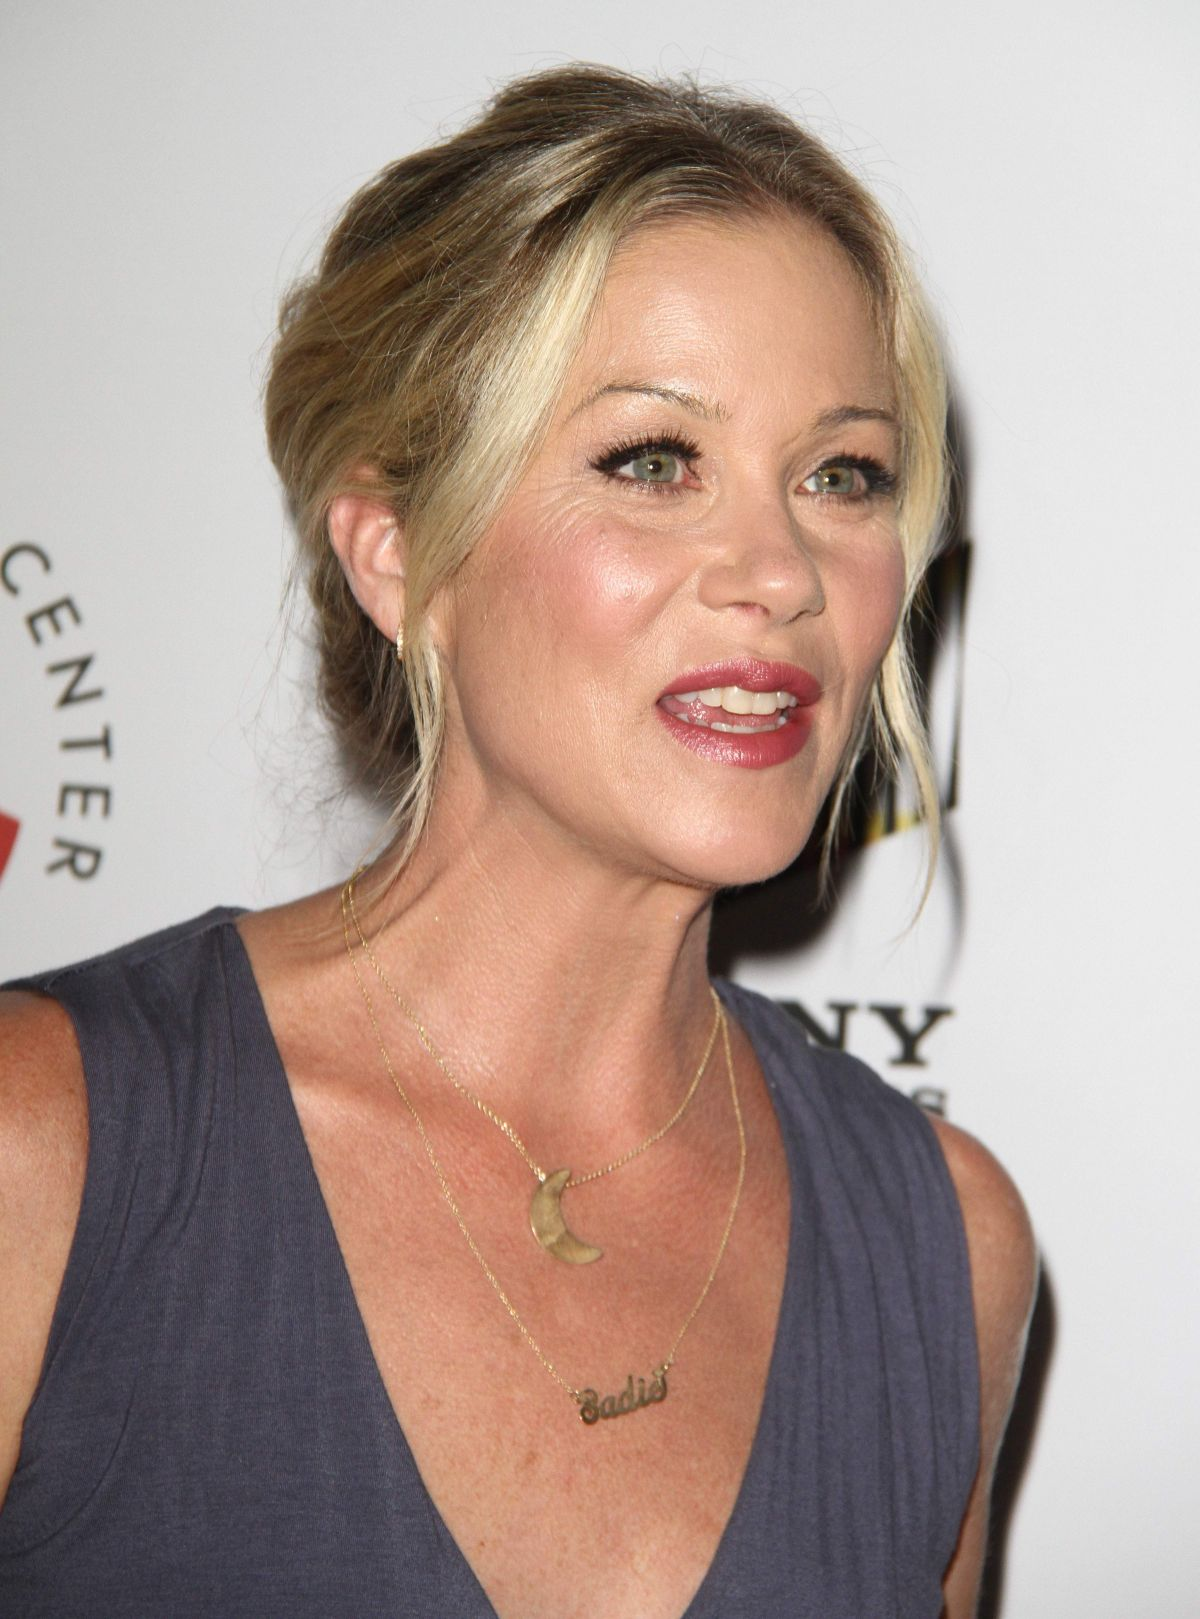 CHRISTINA APPLEGATE at 26th Annual Simply Shakespeare Benefit 09/19/2016